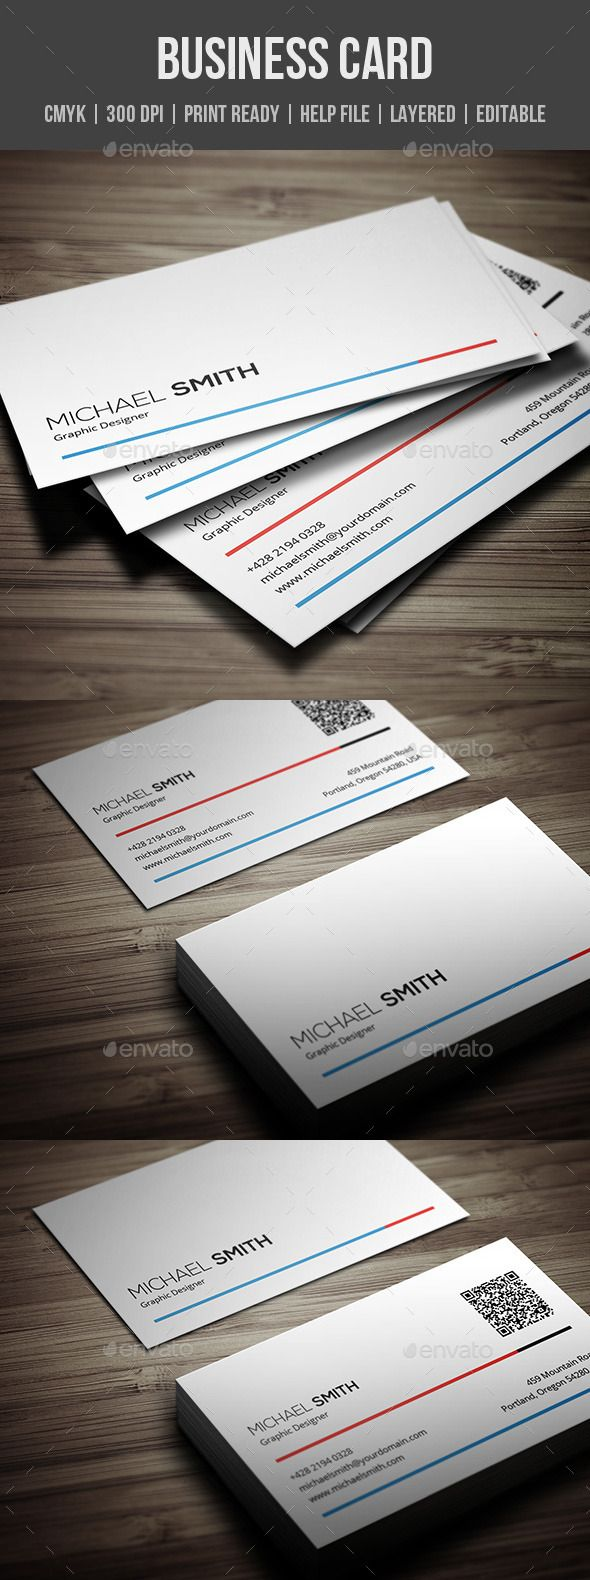 28 best Business Cards images on Pinterest | Business cards ...